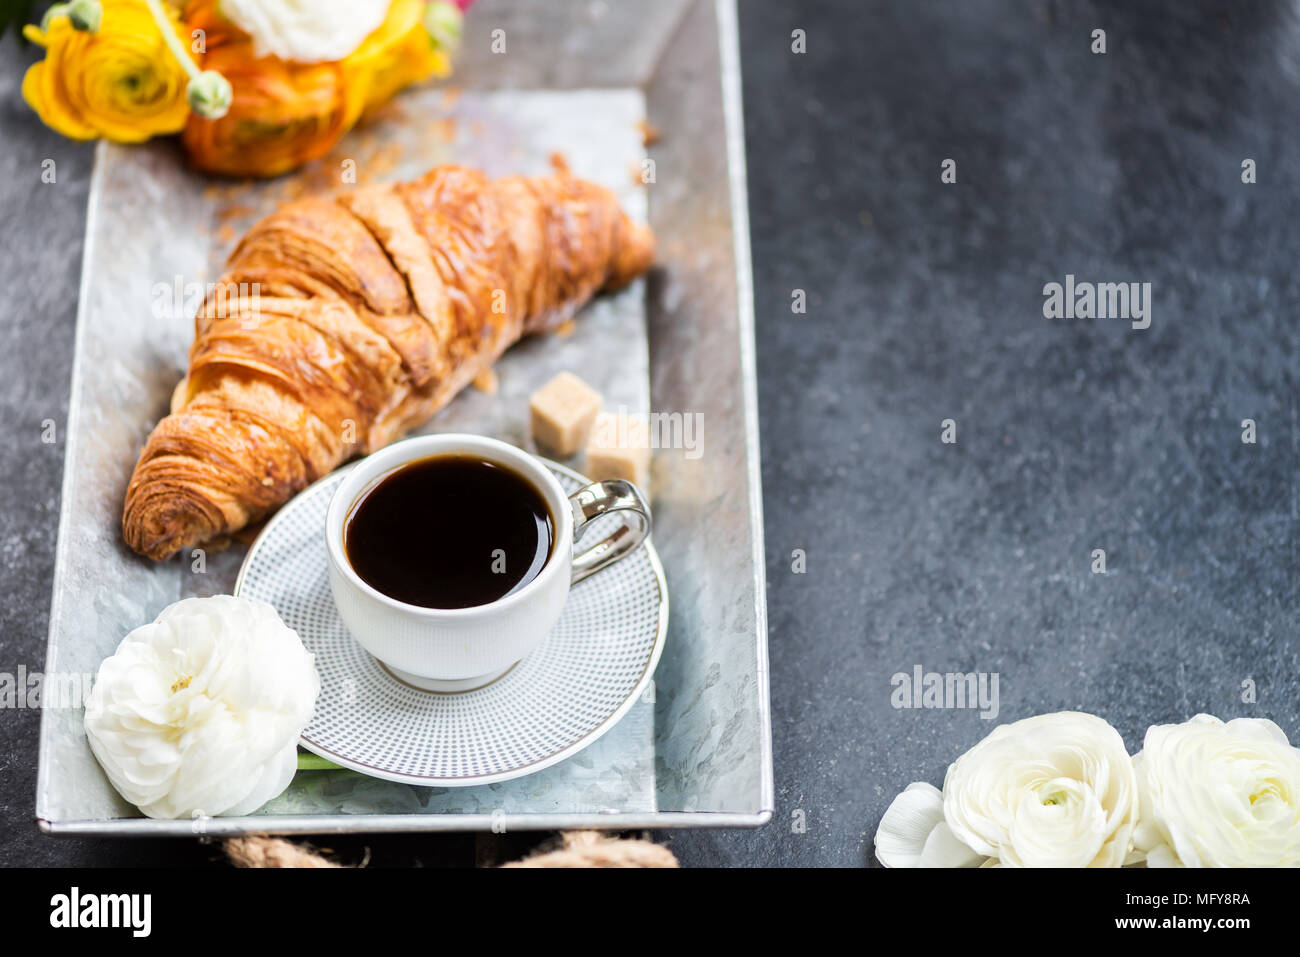 Light Breakfast from fresh Croissant and Cup of Coffee on the grey tray, Ranunculus Flowers nearby - Stock Image